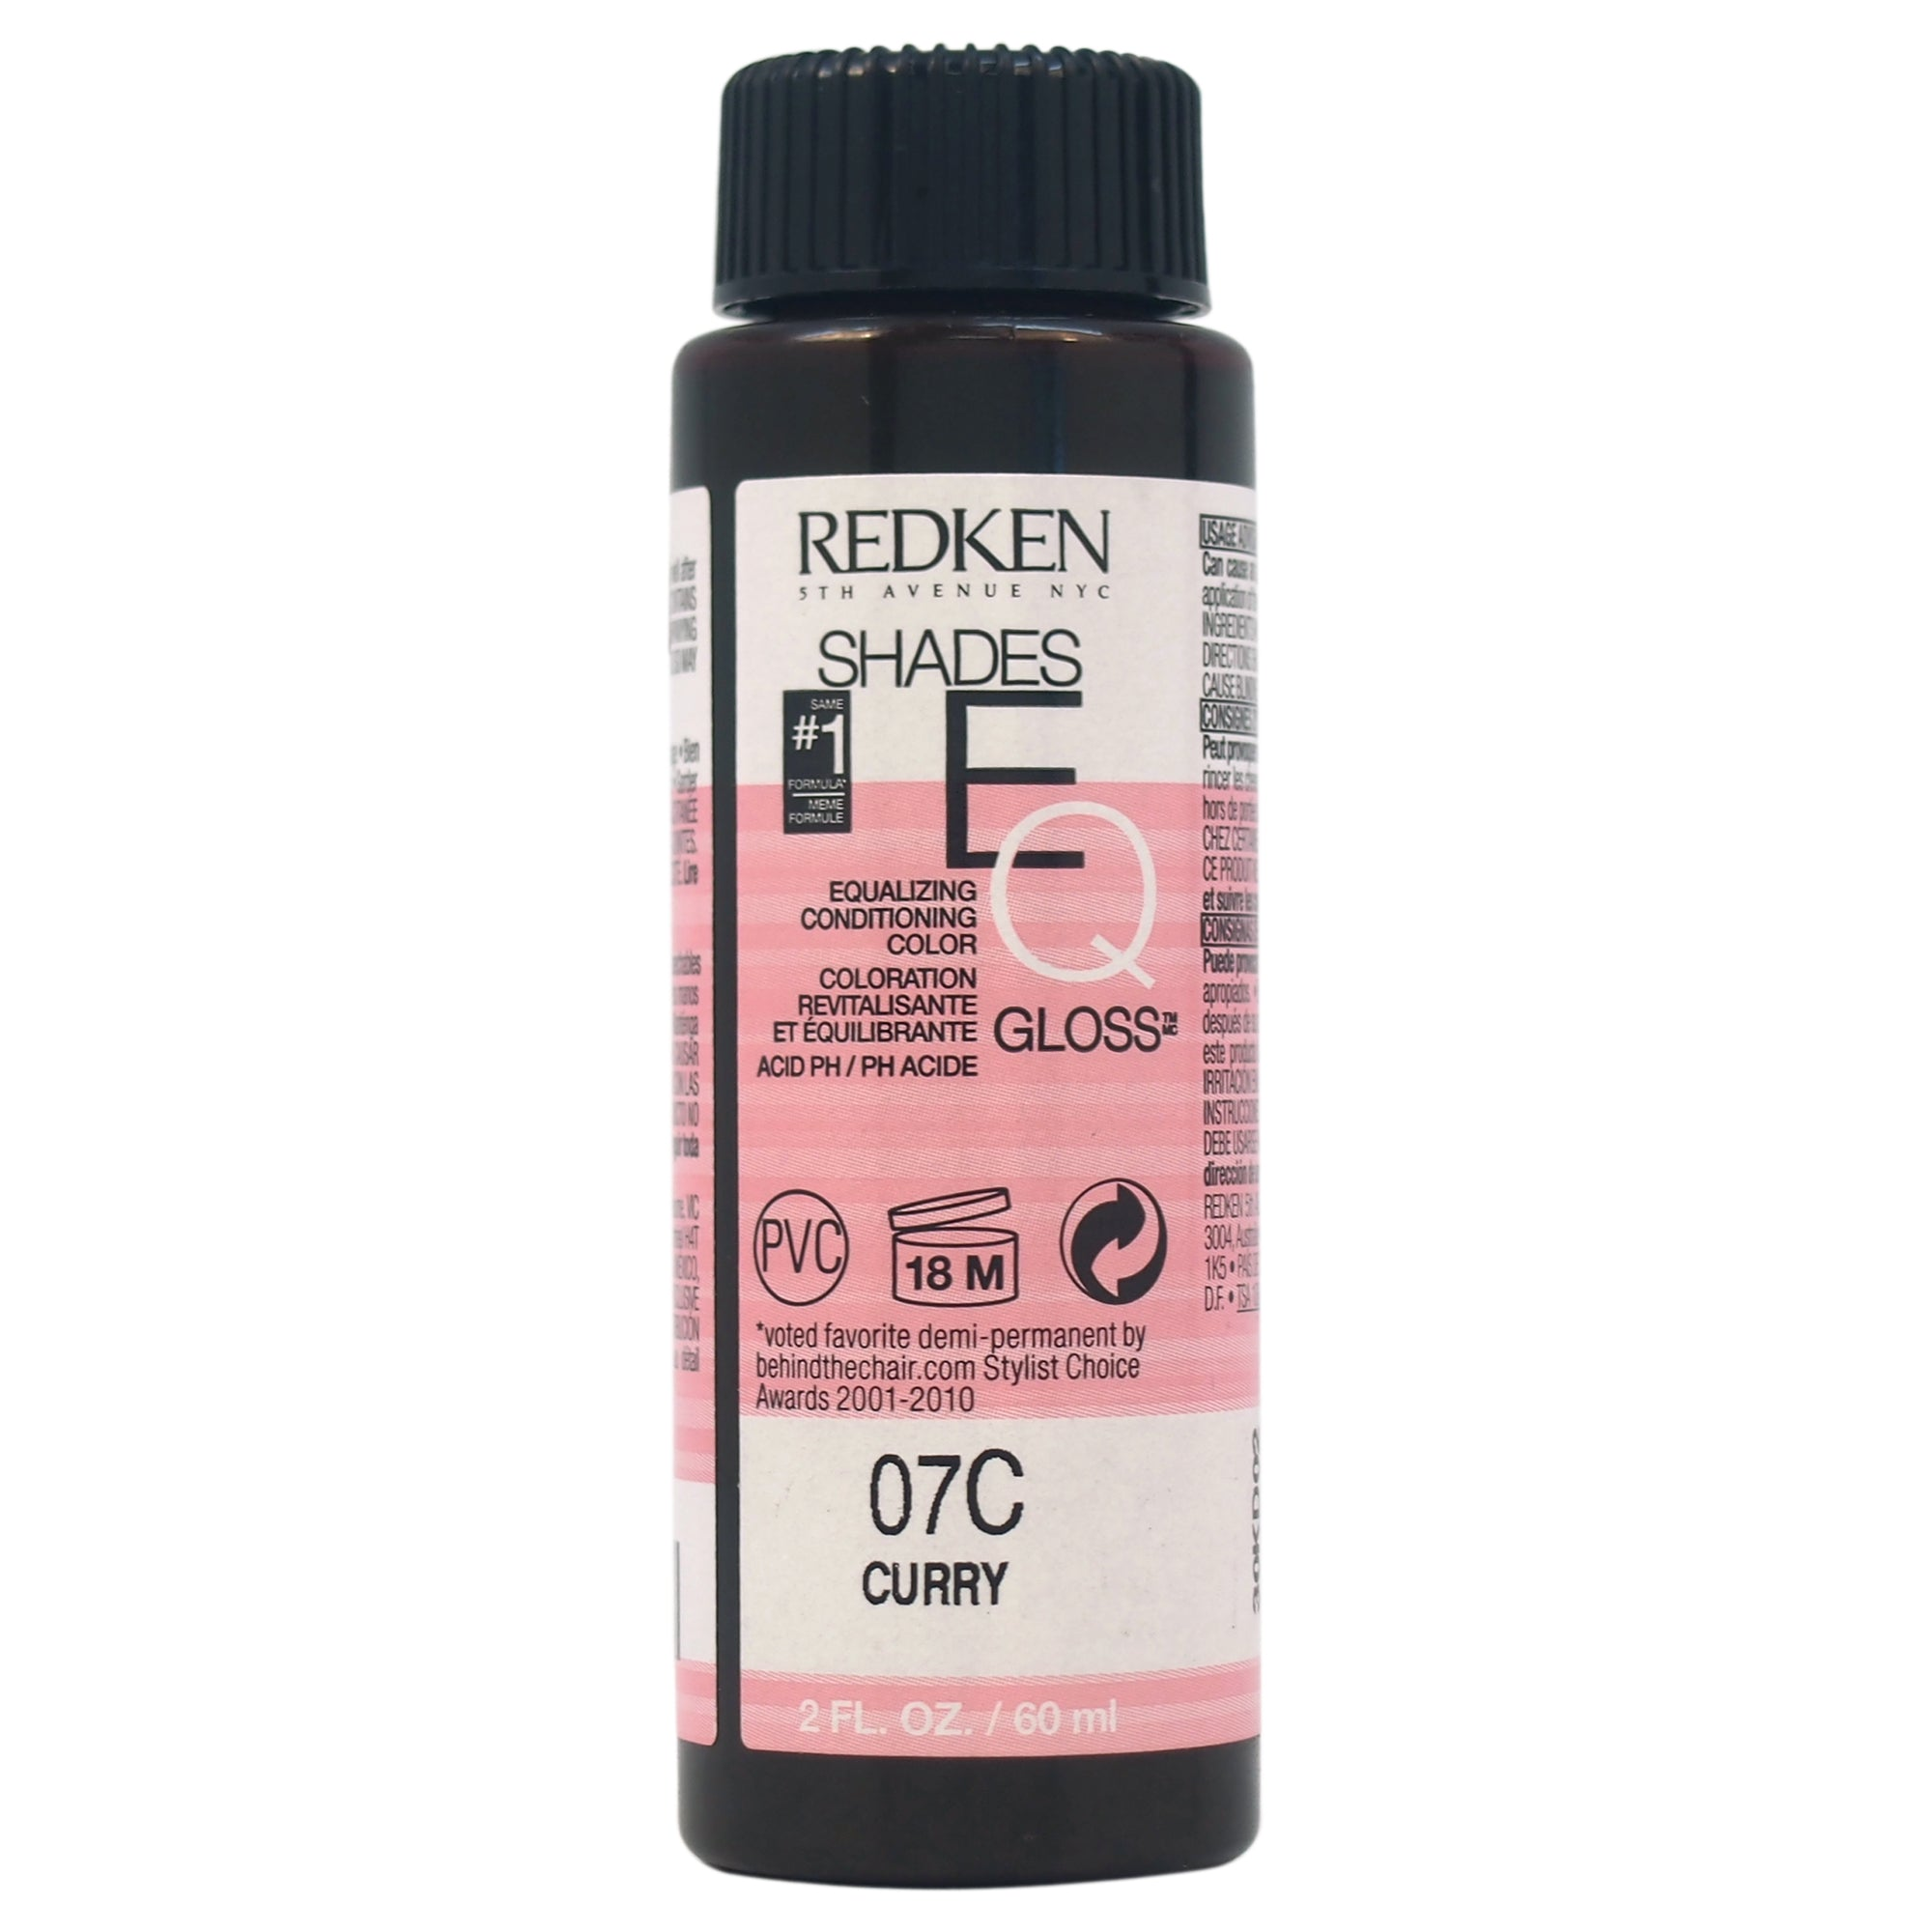 Redken Shades EQ Color Gloss 07C